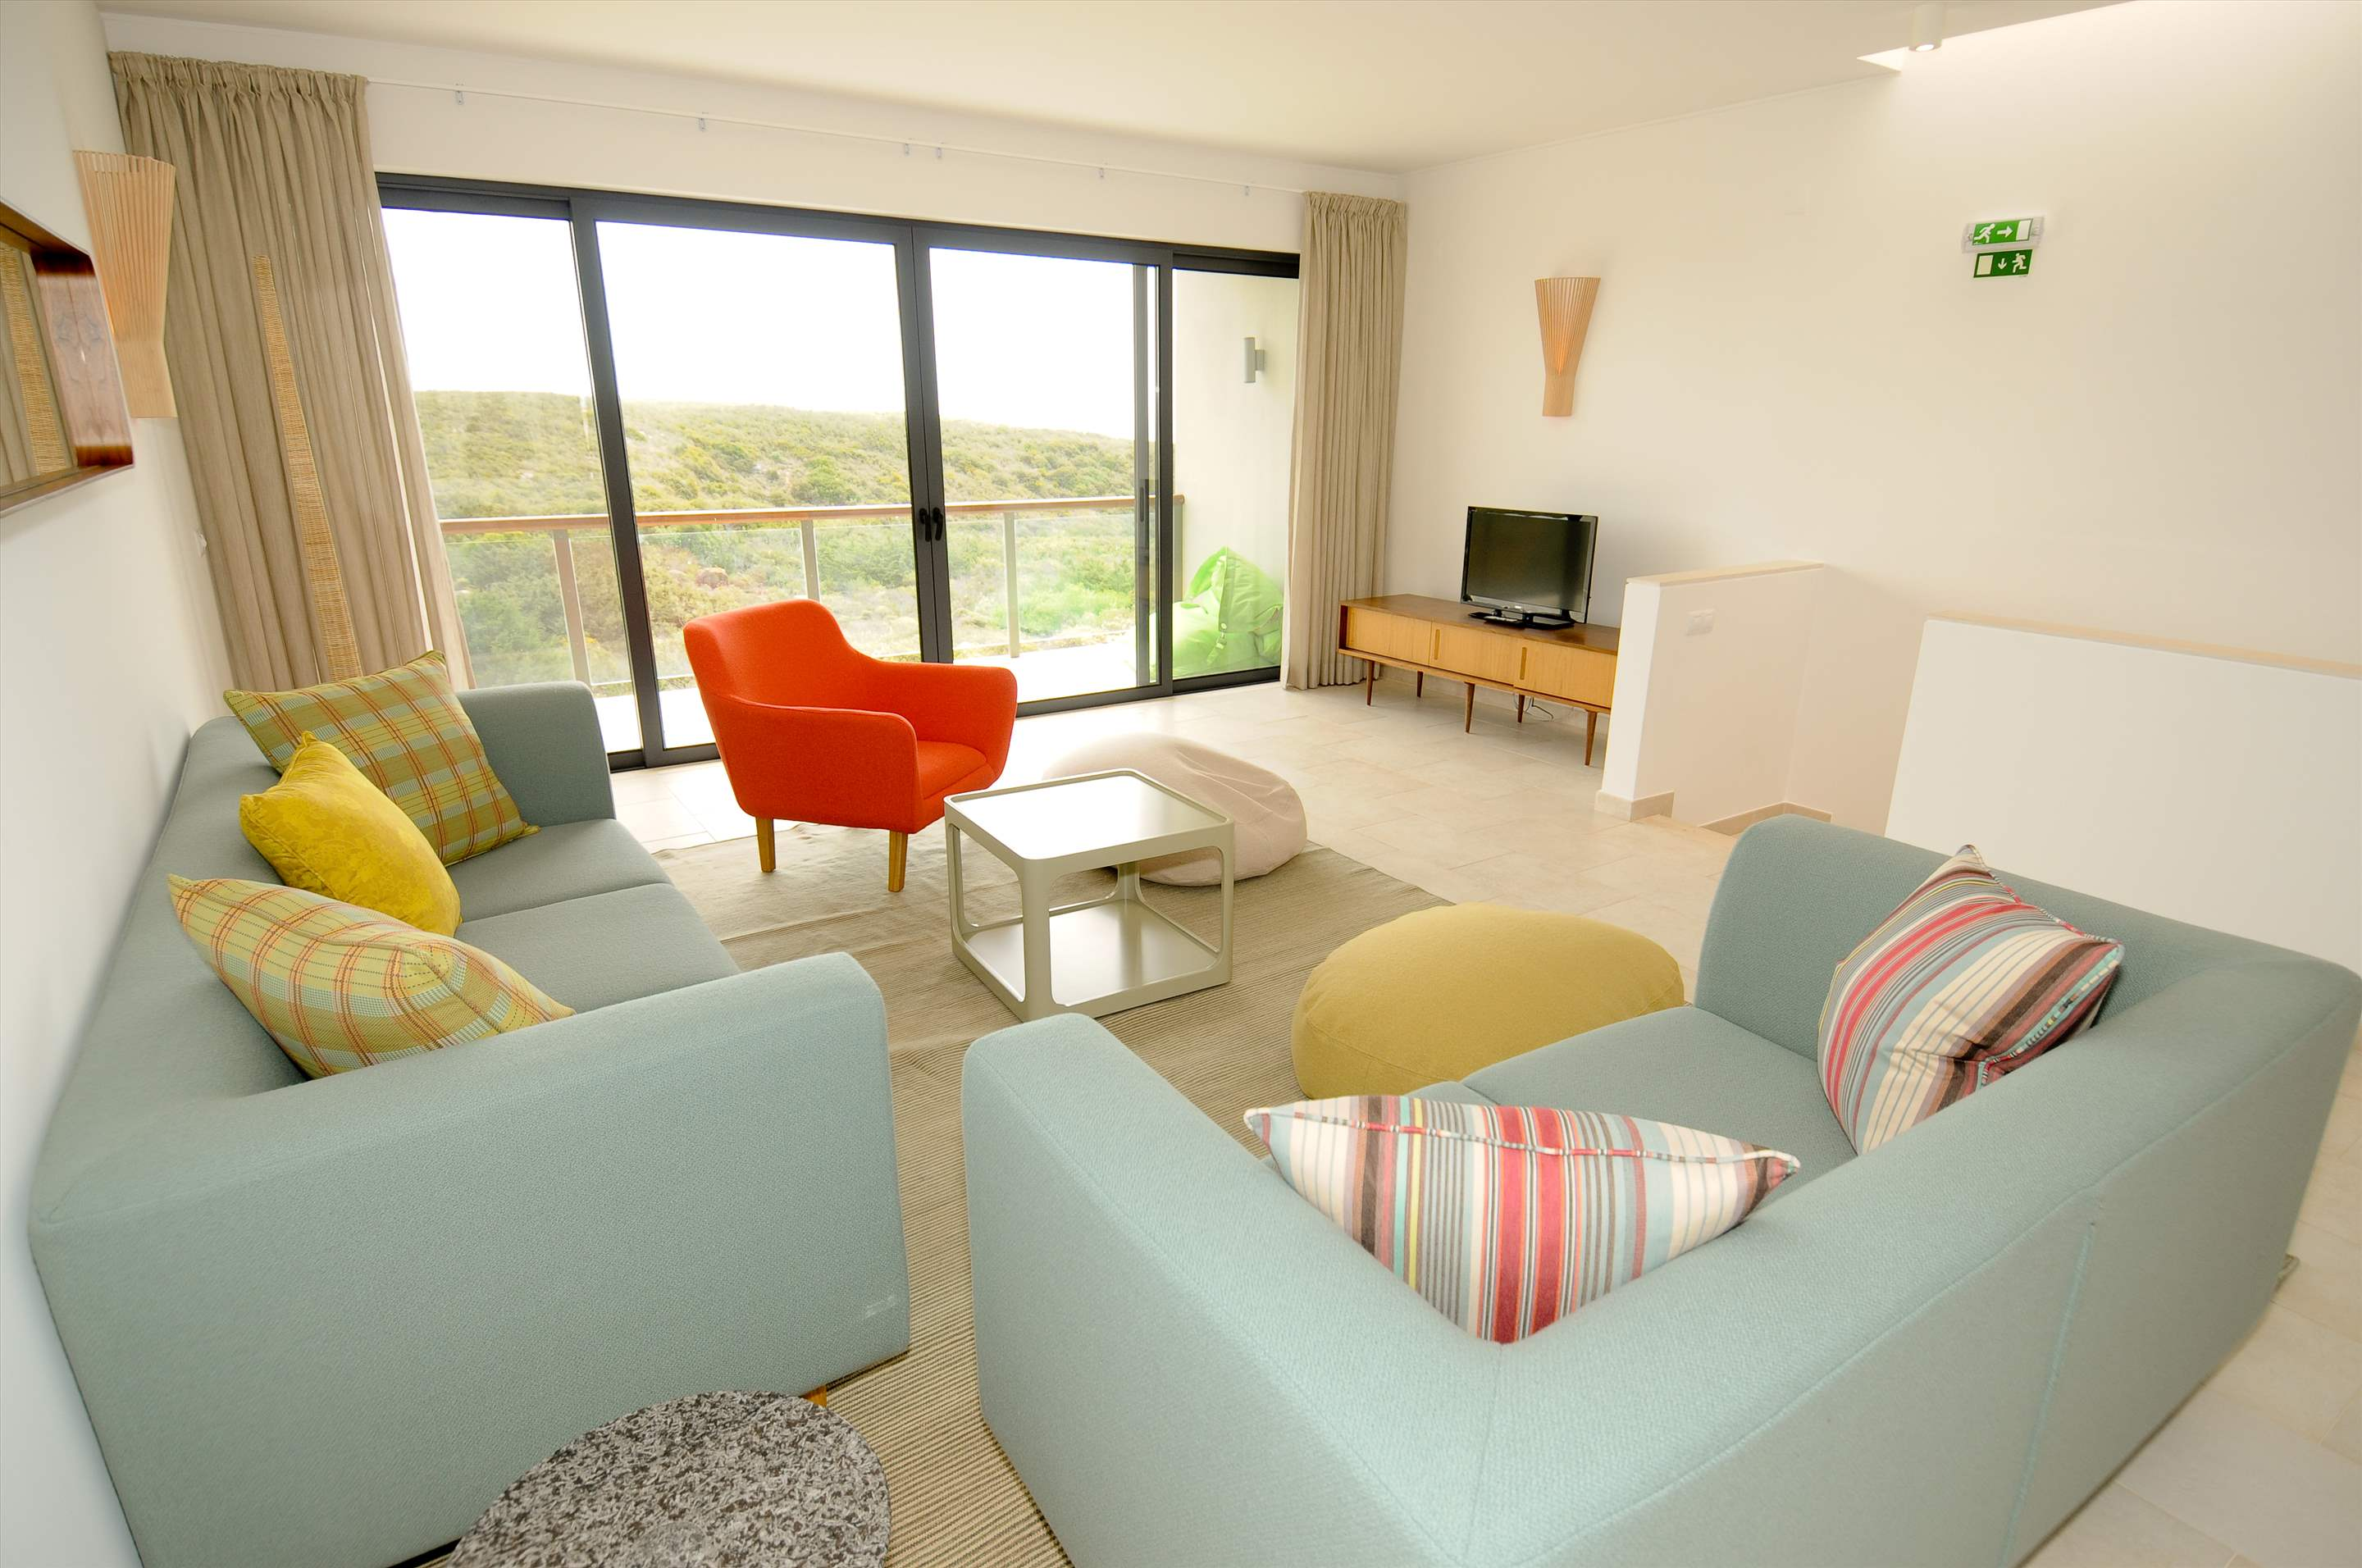 Martinhal Village Bay House, Master Bay House Three Bedroom, 3 bedroom villa in Martinhal Sagres, Algarve Photo #1